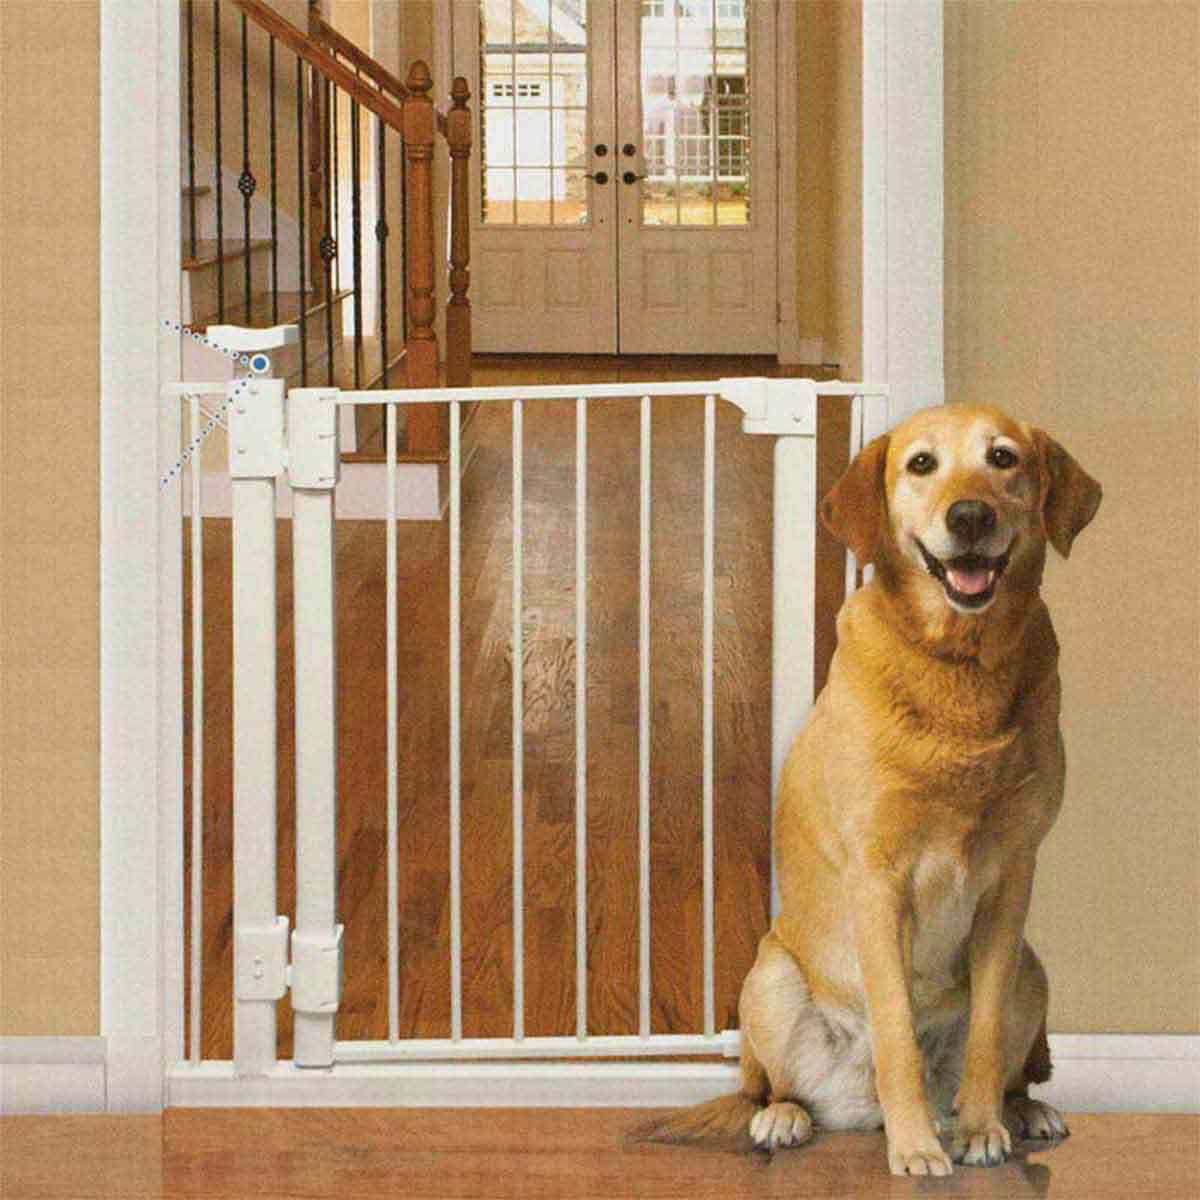 Four Paws Hands-Free Dog Gate - 30-34 inches wide by 32 inches high